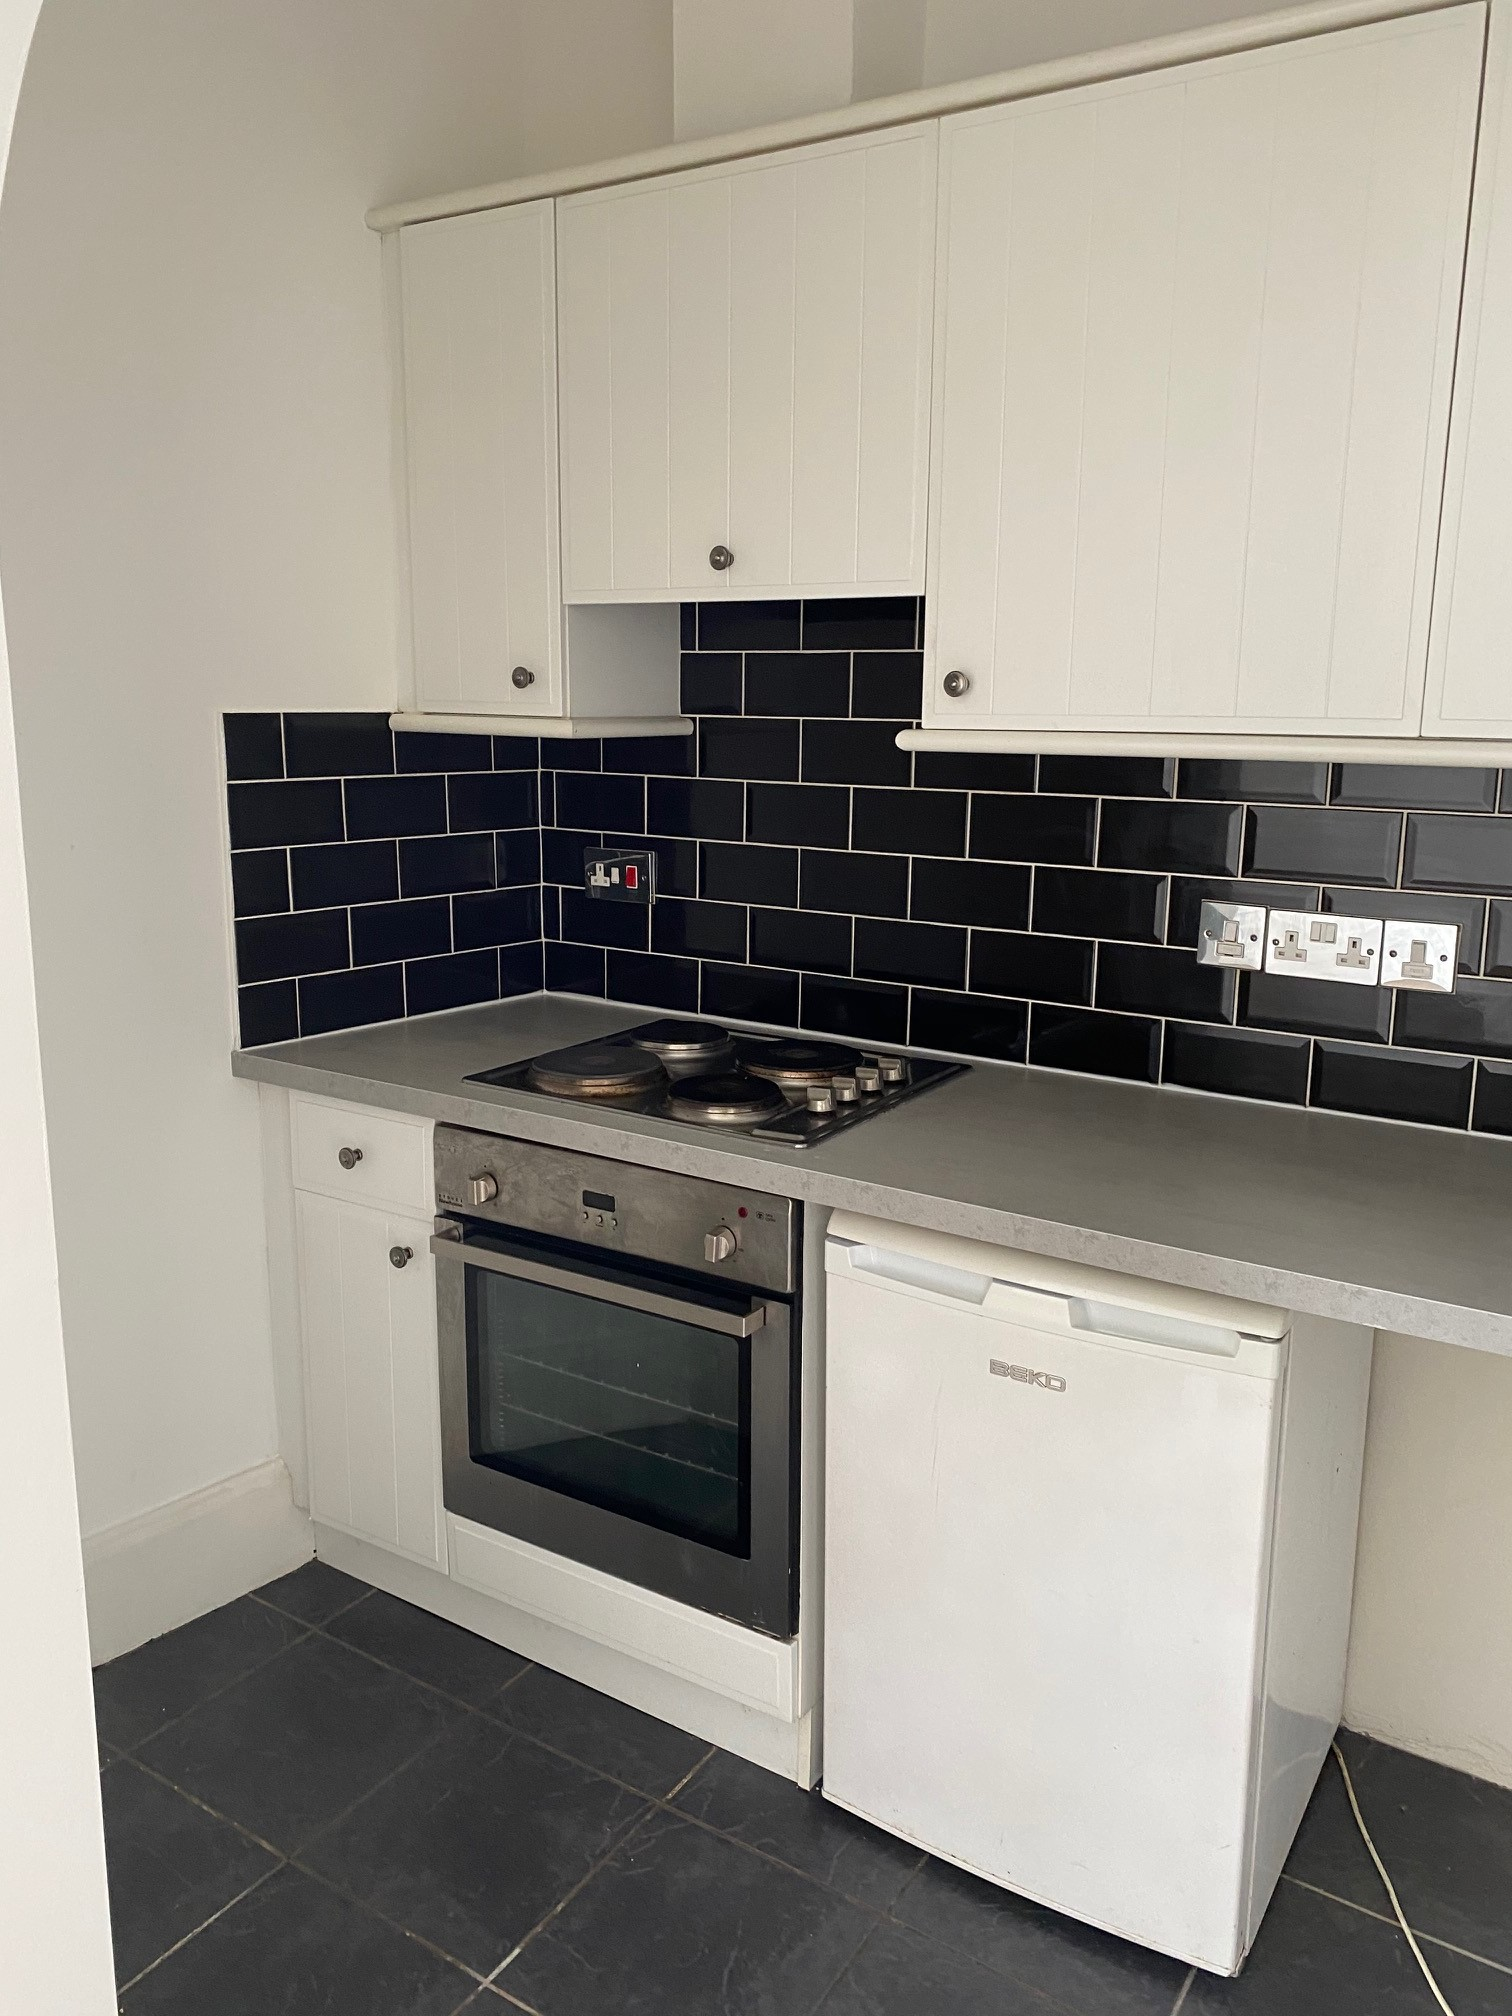 Flat 2, Chinewood Mews, Southbourne